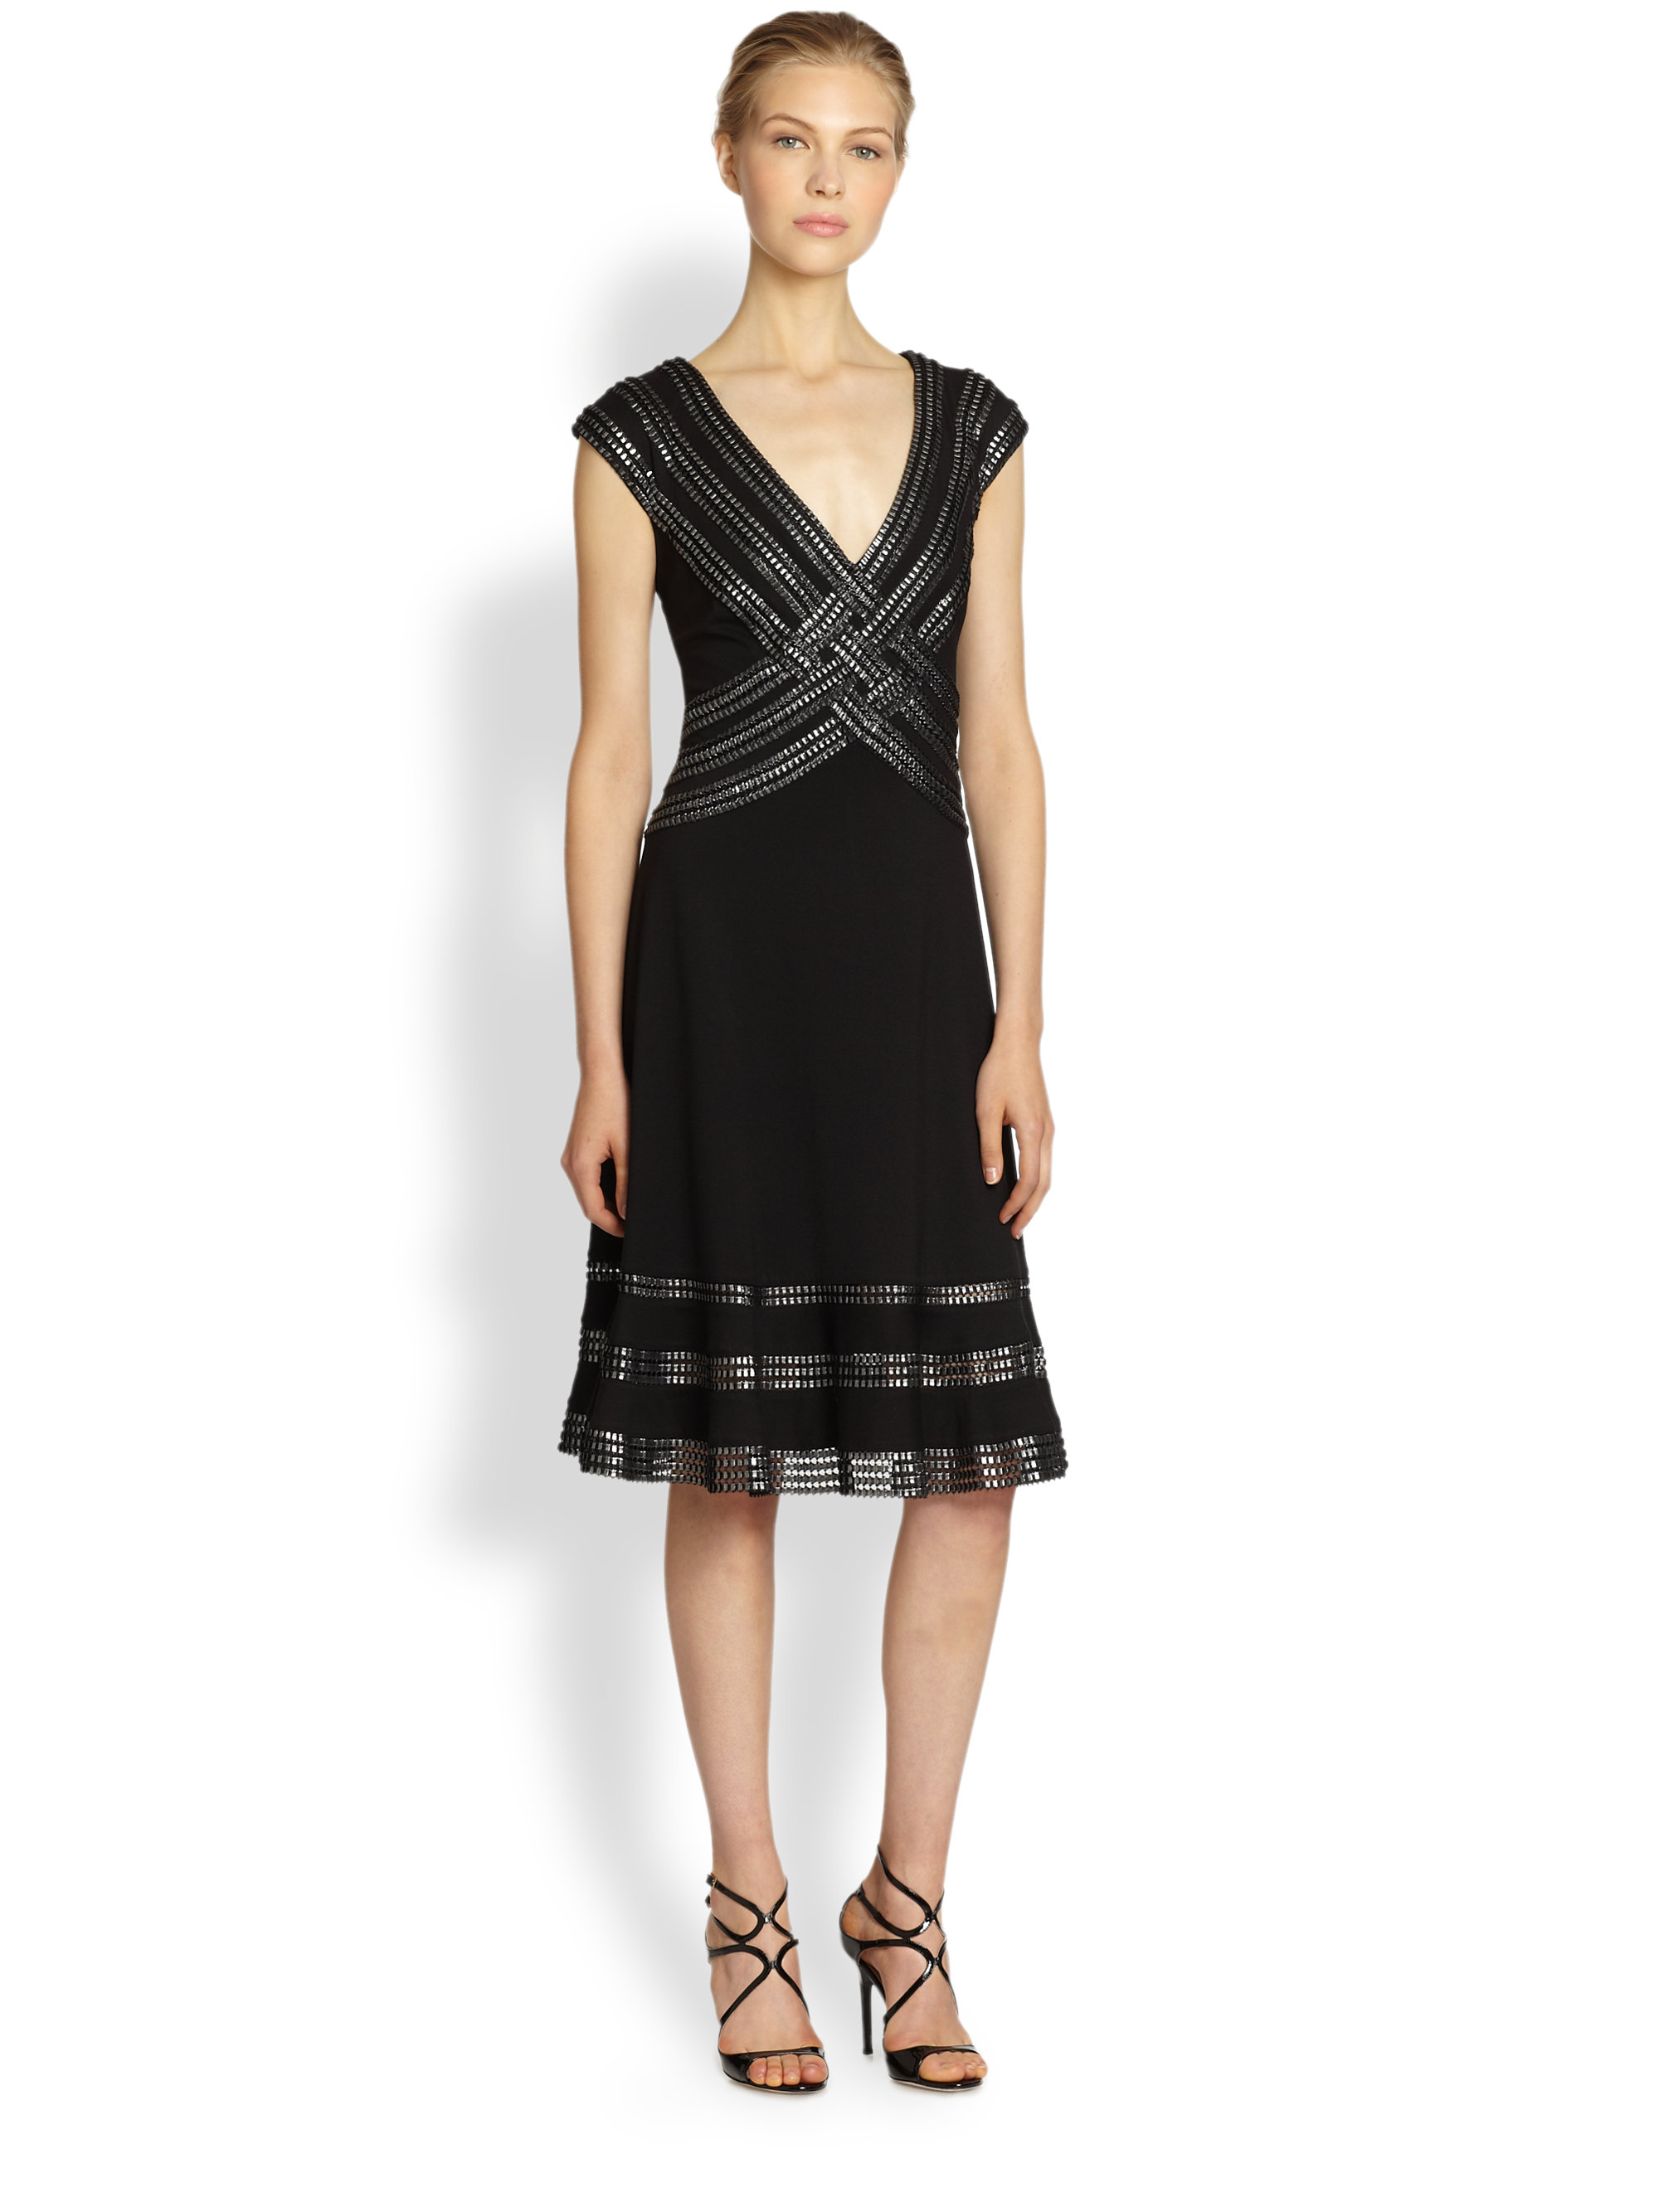 Tadashi shoji Ribbontrimmed Cocktail Dress in Black | Lyst